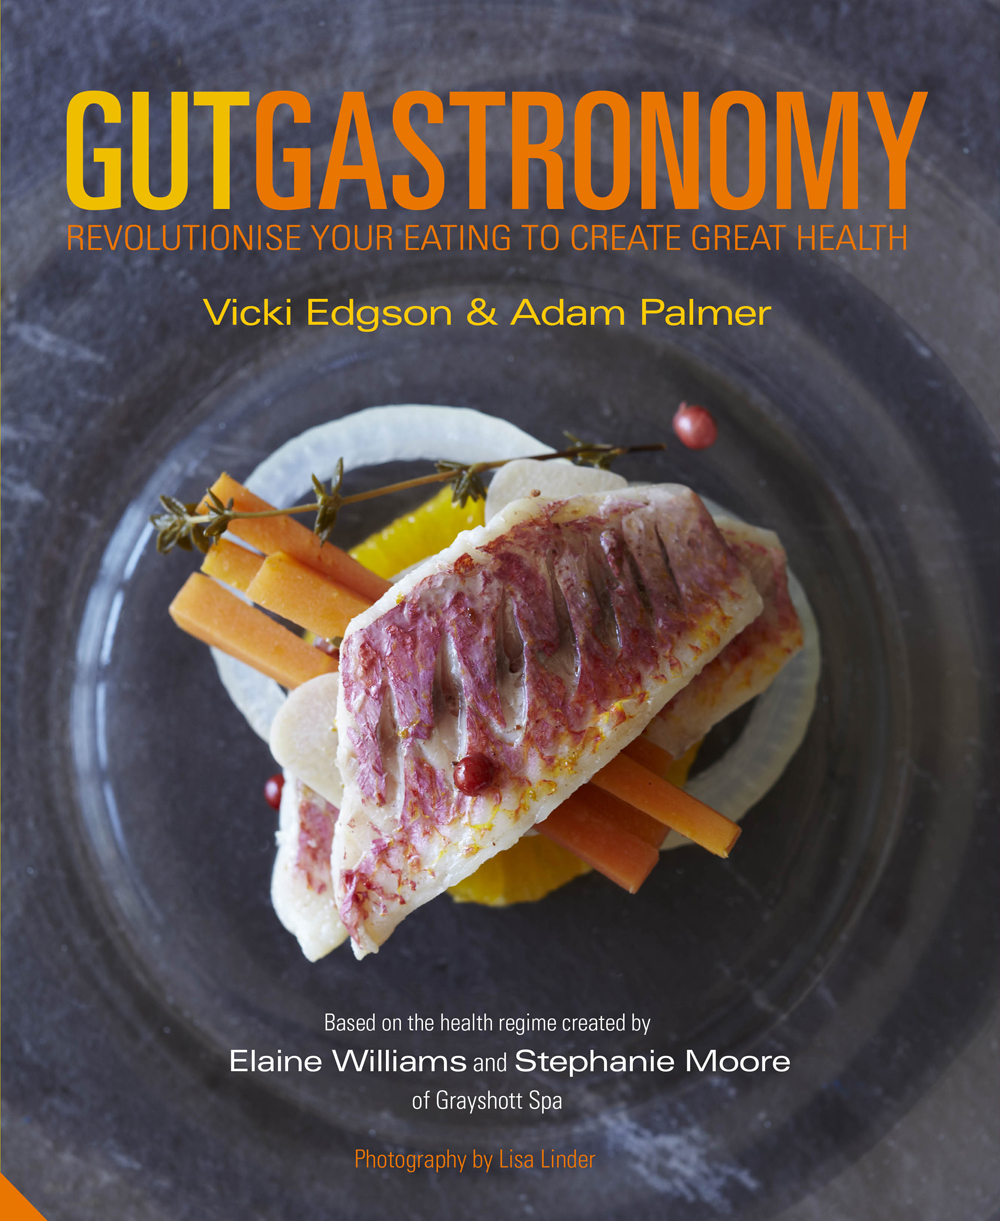 Don't mention the D word – A review of Gut Gastronomy